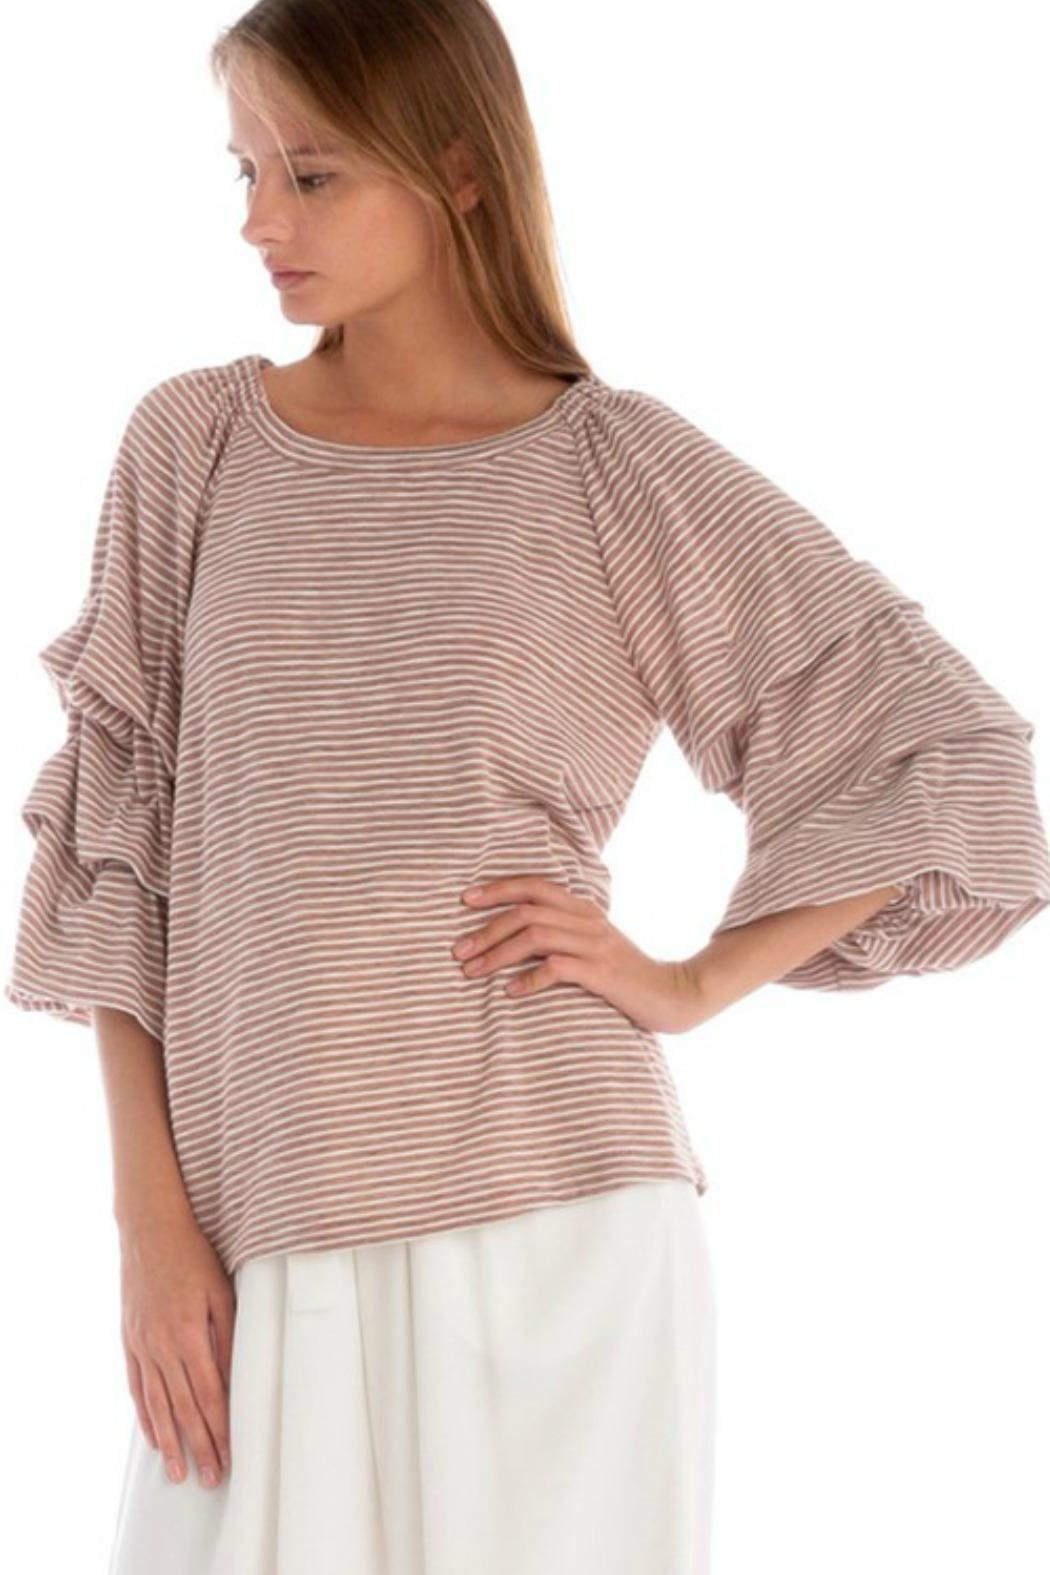 Skies Are Blue Ruched Striped Top - Front Full Image